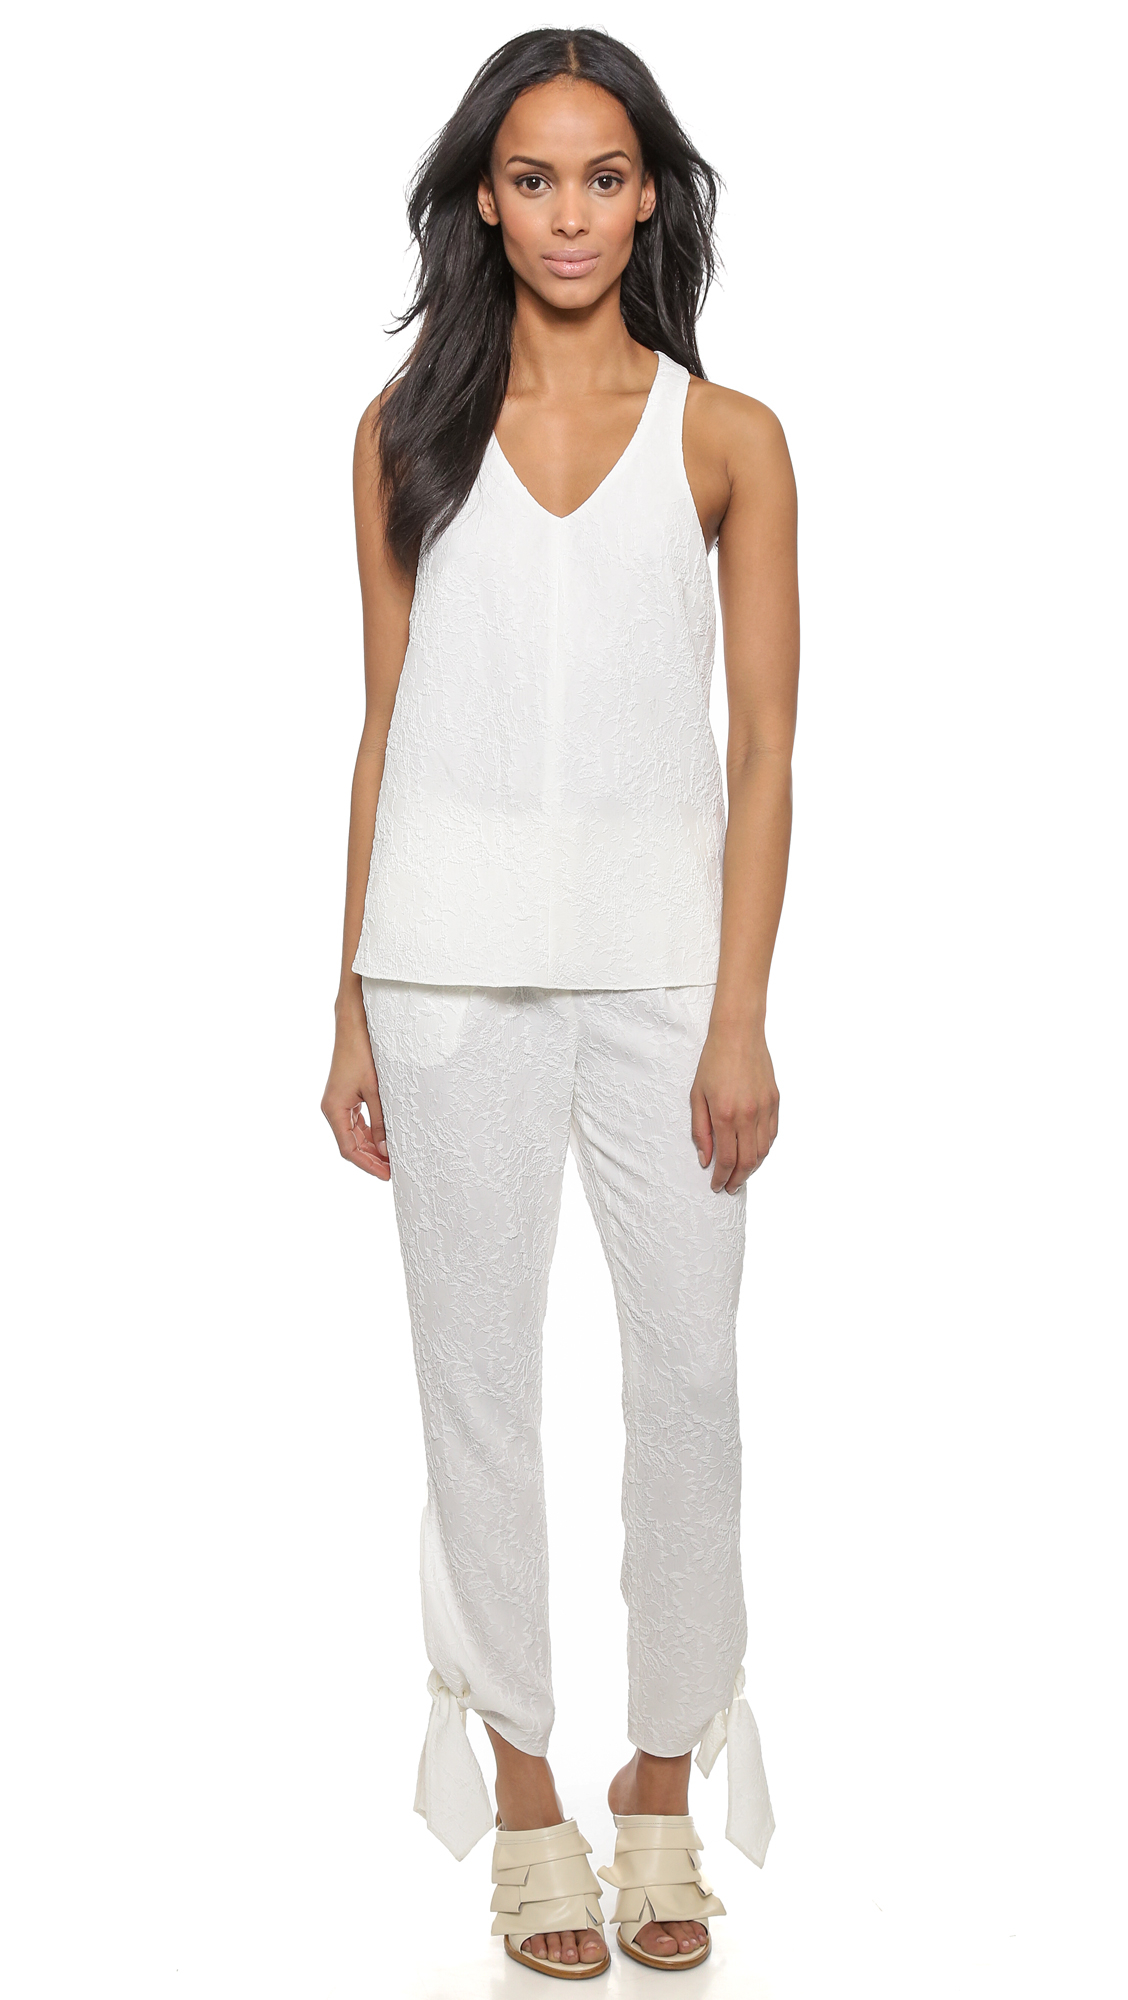 Tibi Pants With Side Ties Ivory In White Lyst